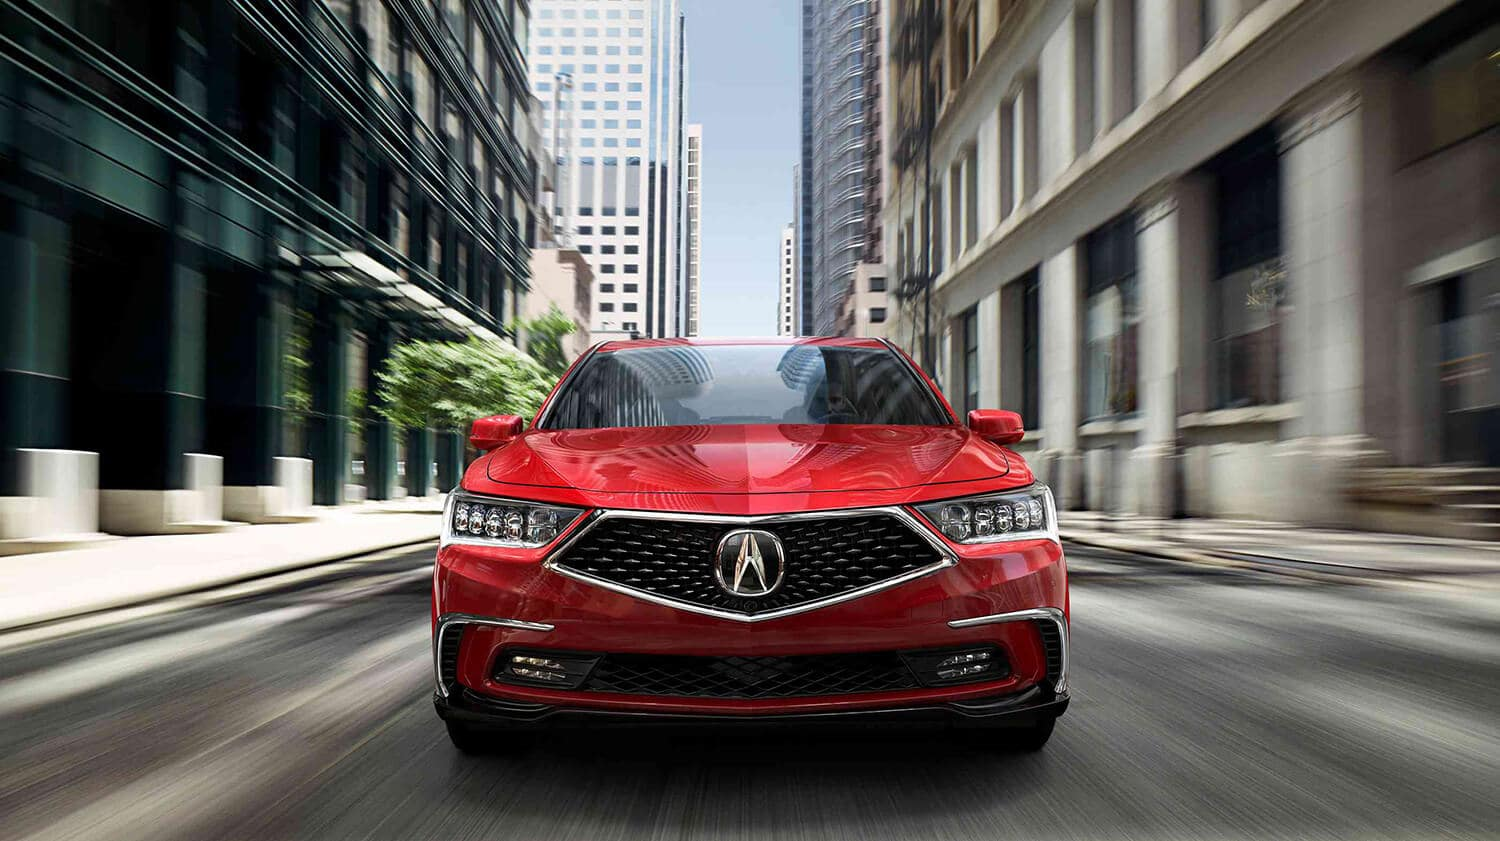 2018 Acura RLX Exterior Front Grille